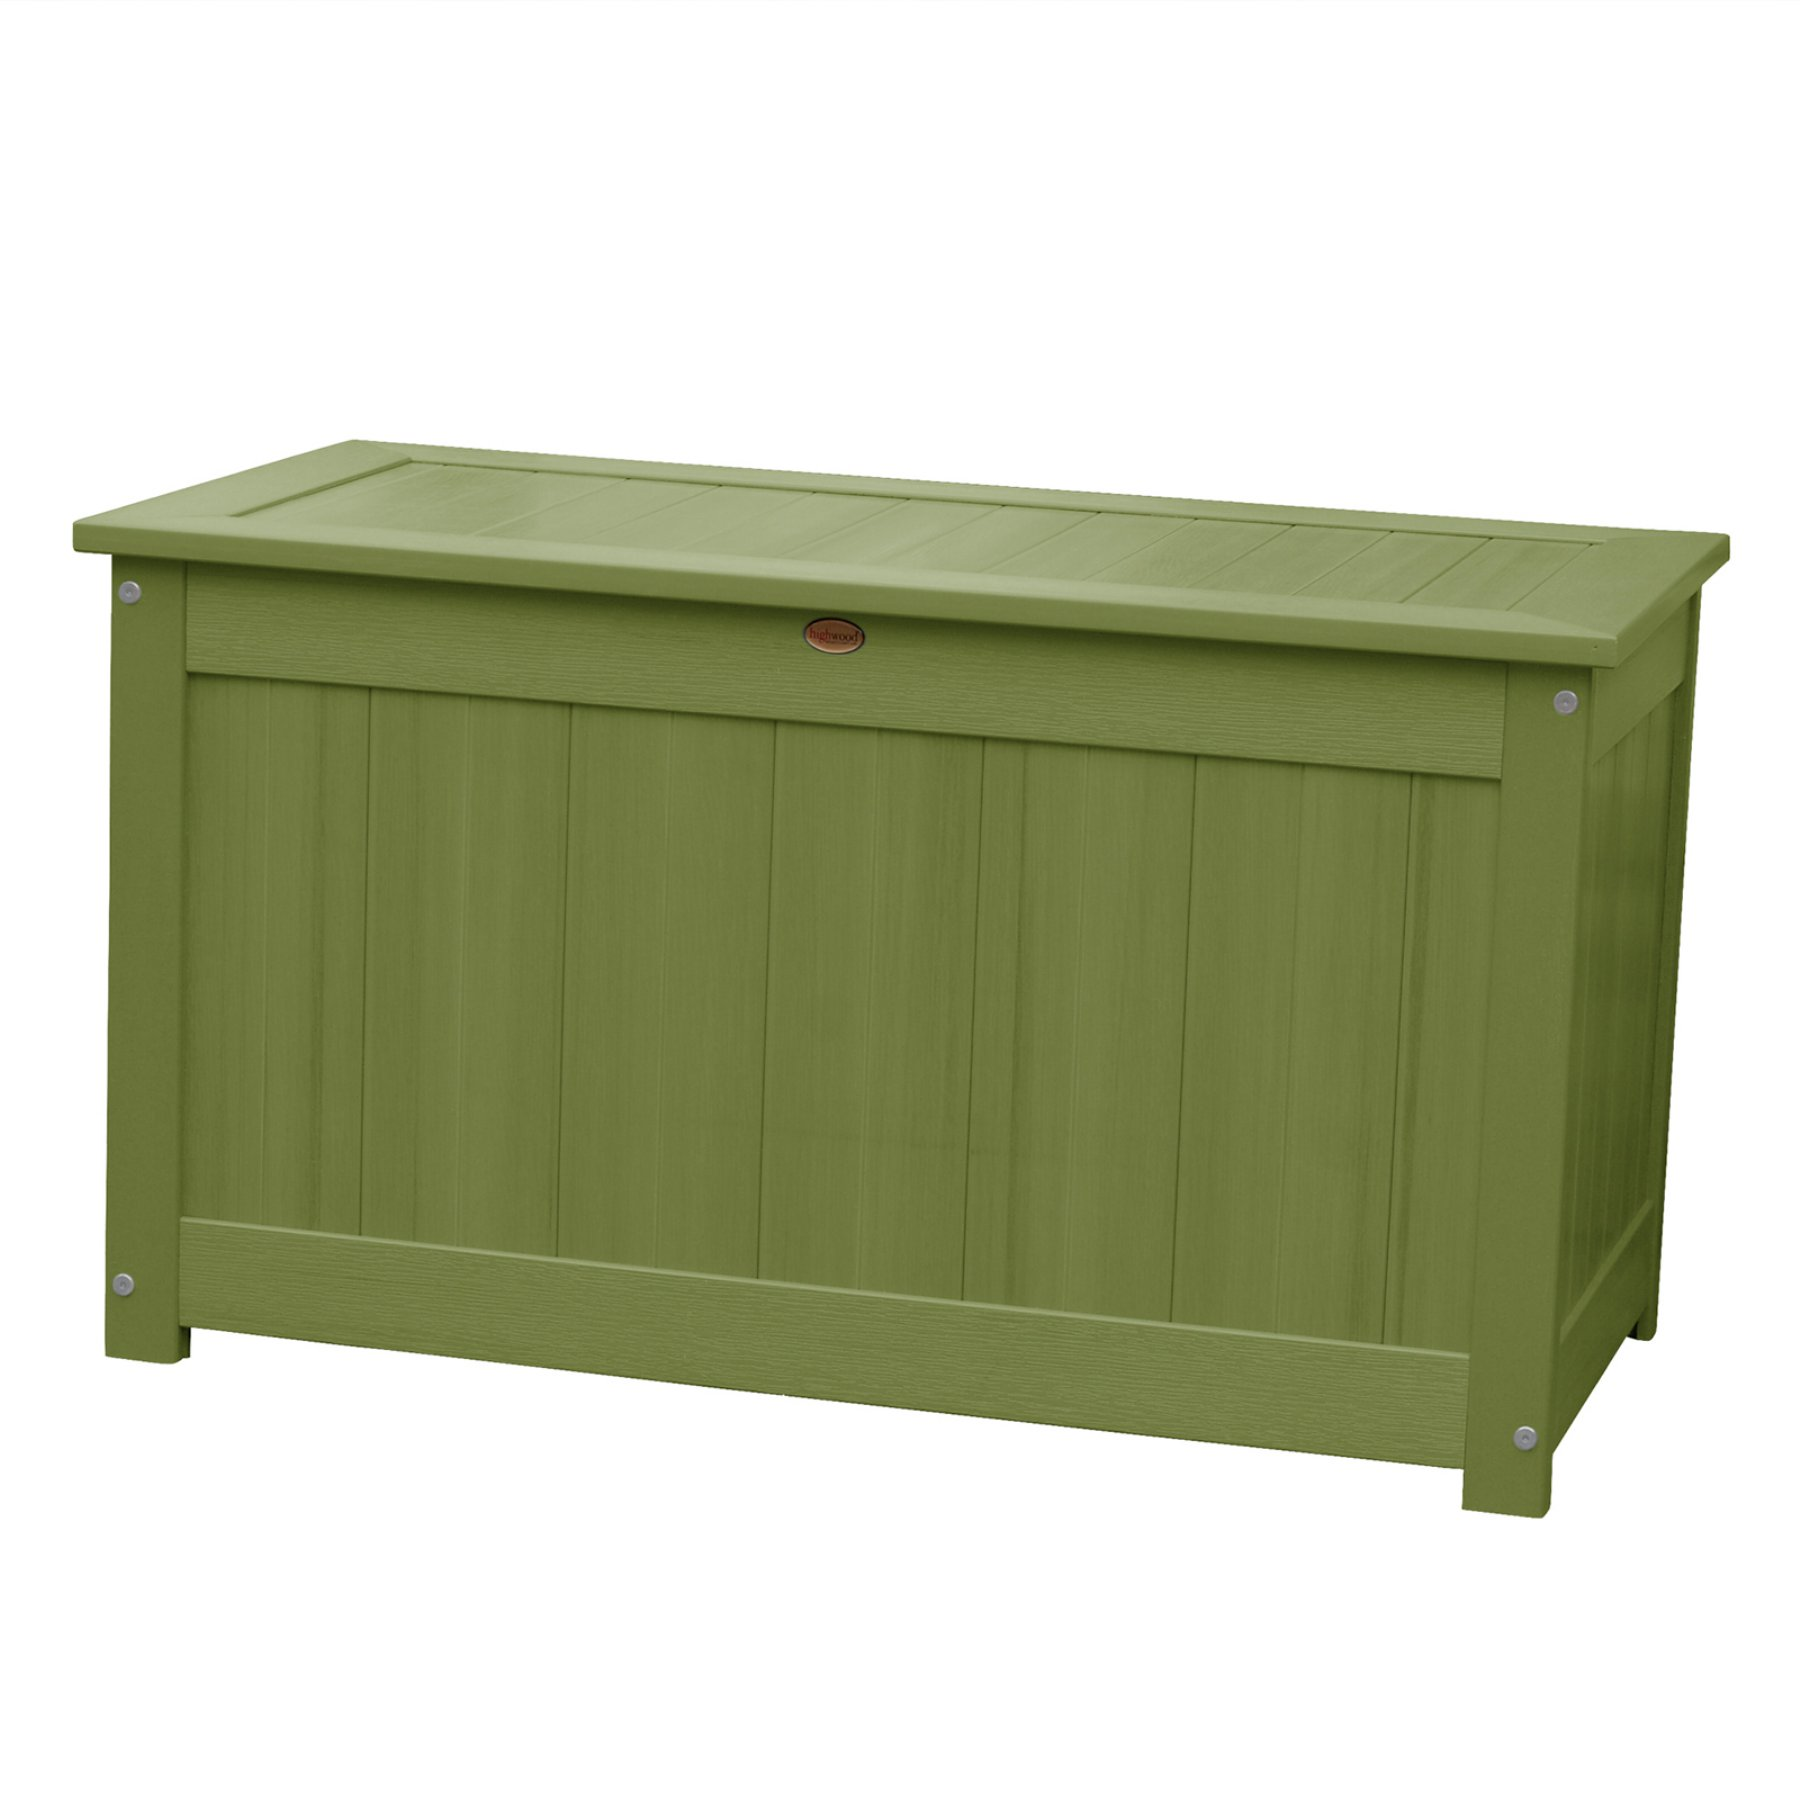 Outdoor Highwood Usa Recycled Plastic 4 Ft Storage Deck Box